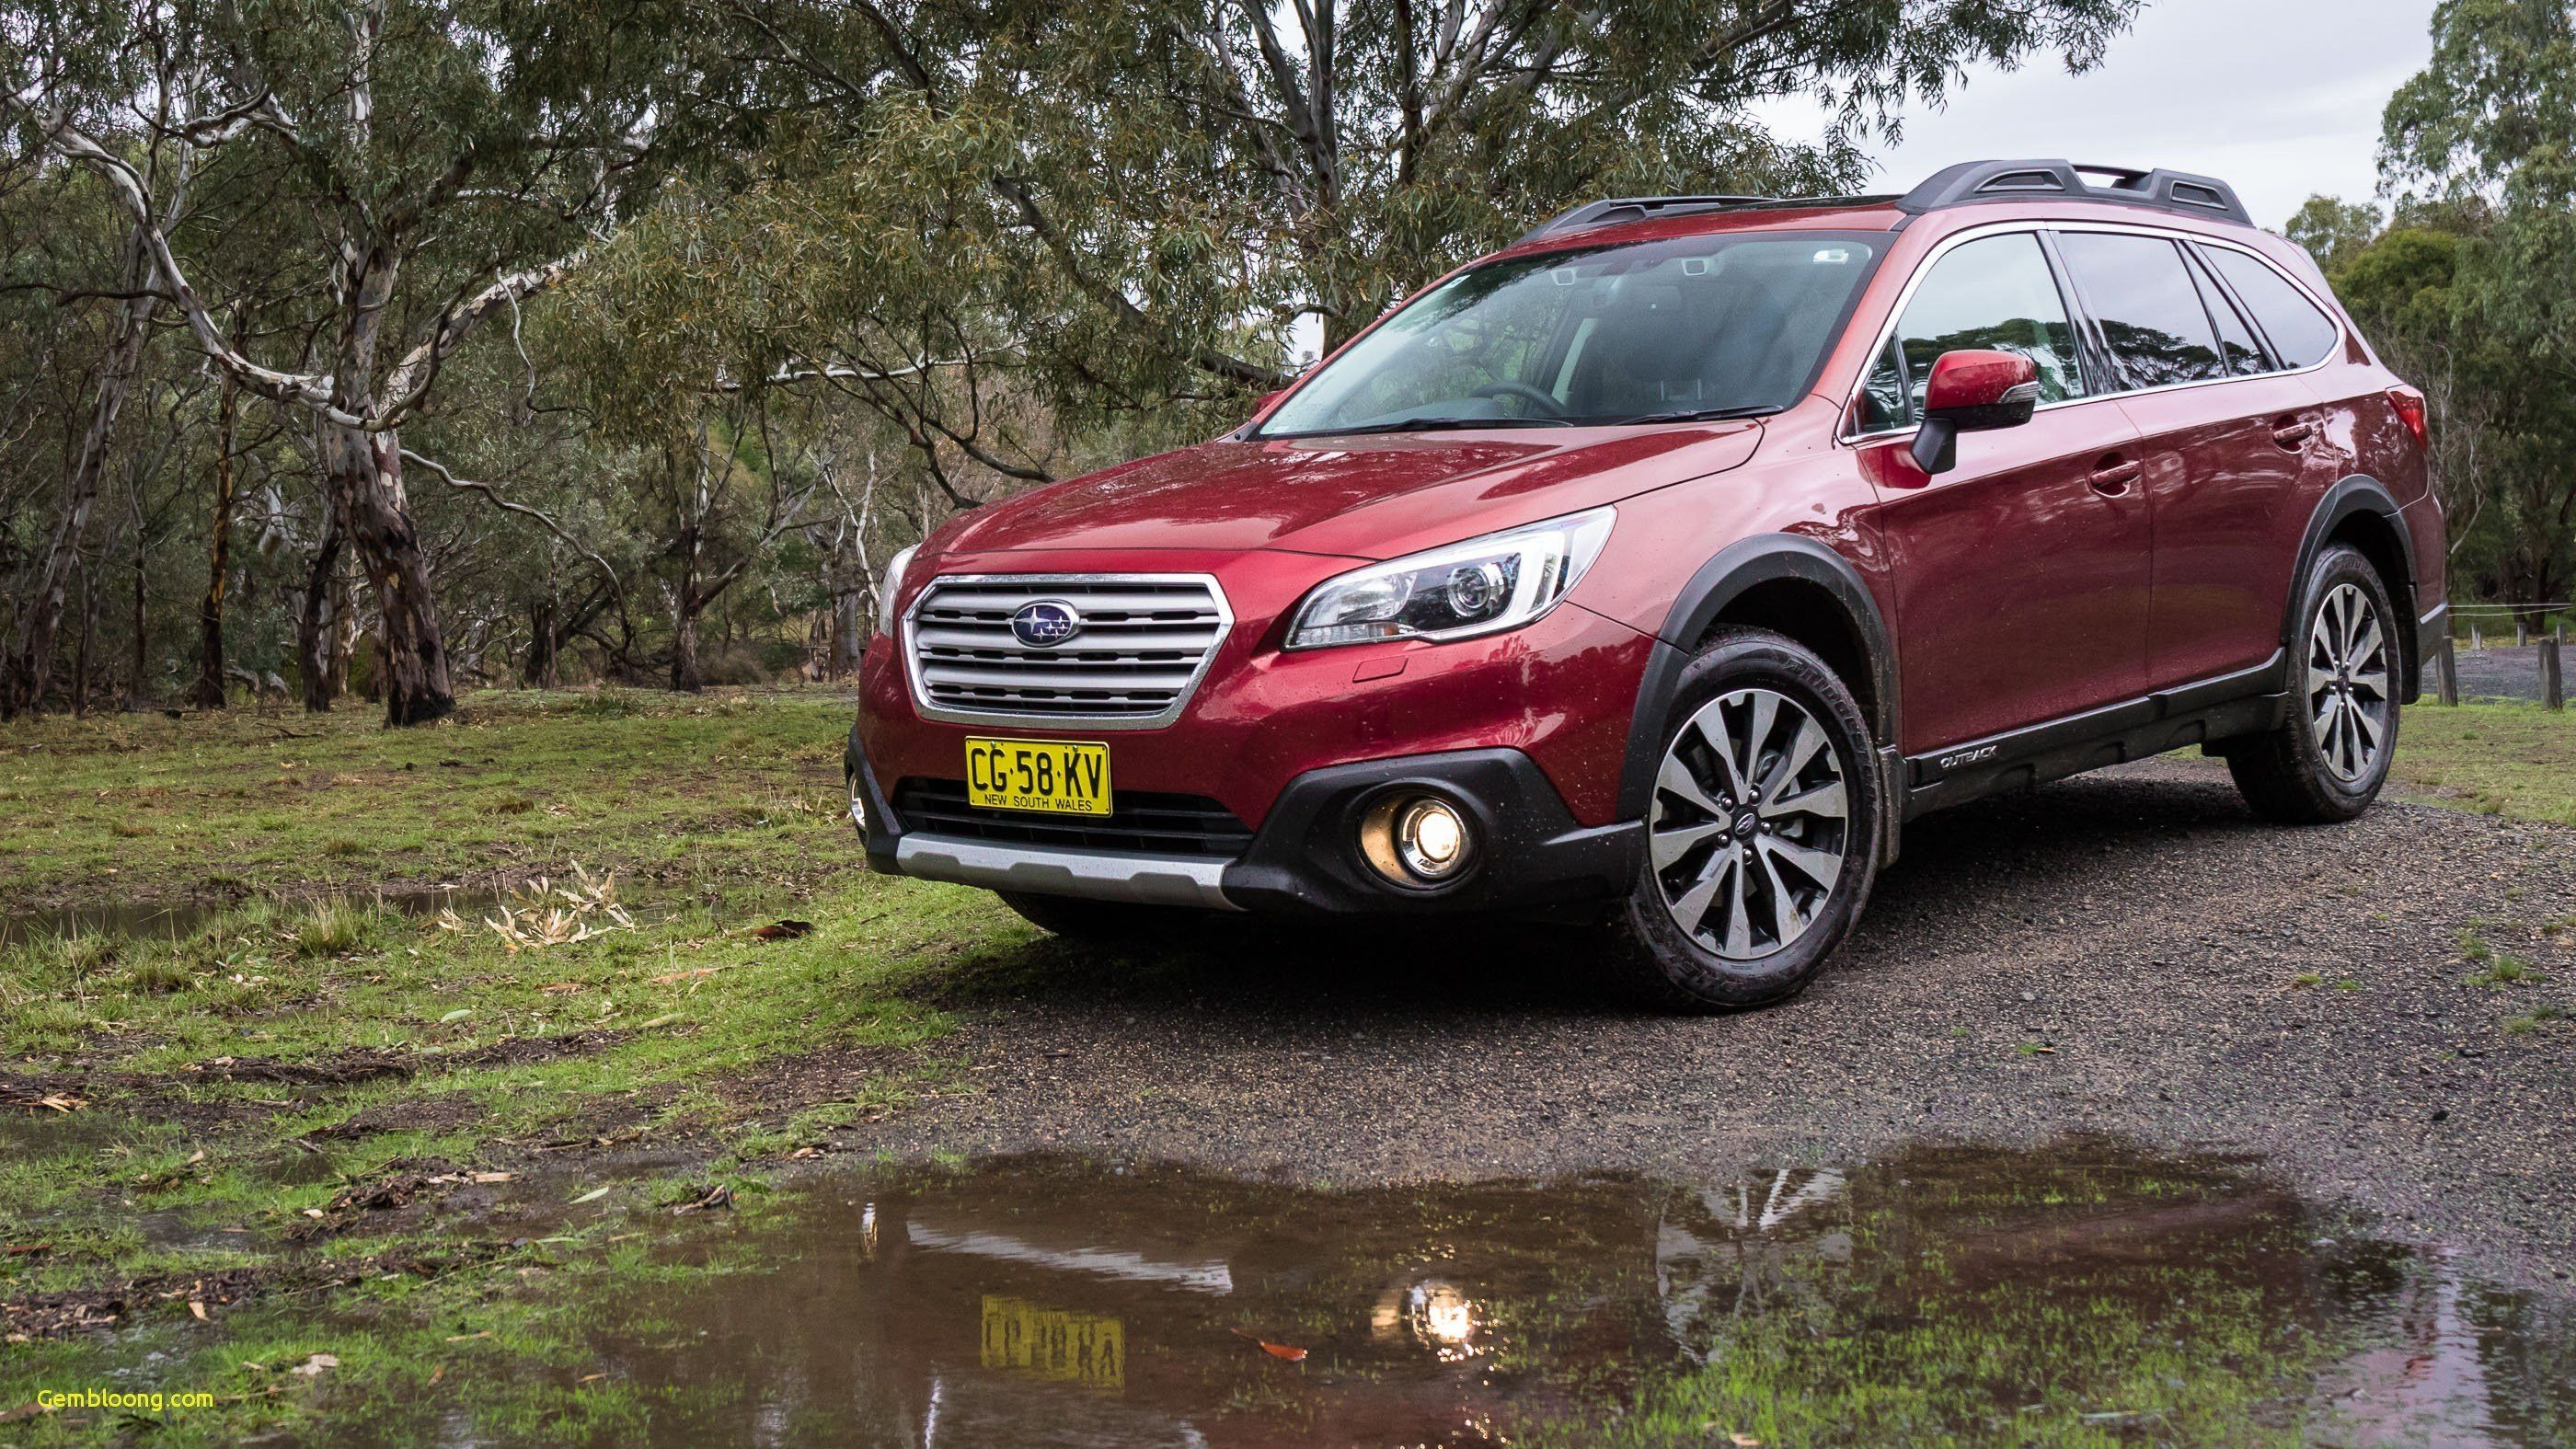 The 2020 Subaru Tribeca Rumor Subaru Outback Subaru Tribeca